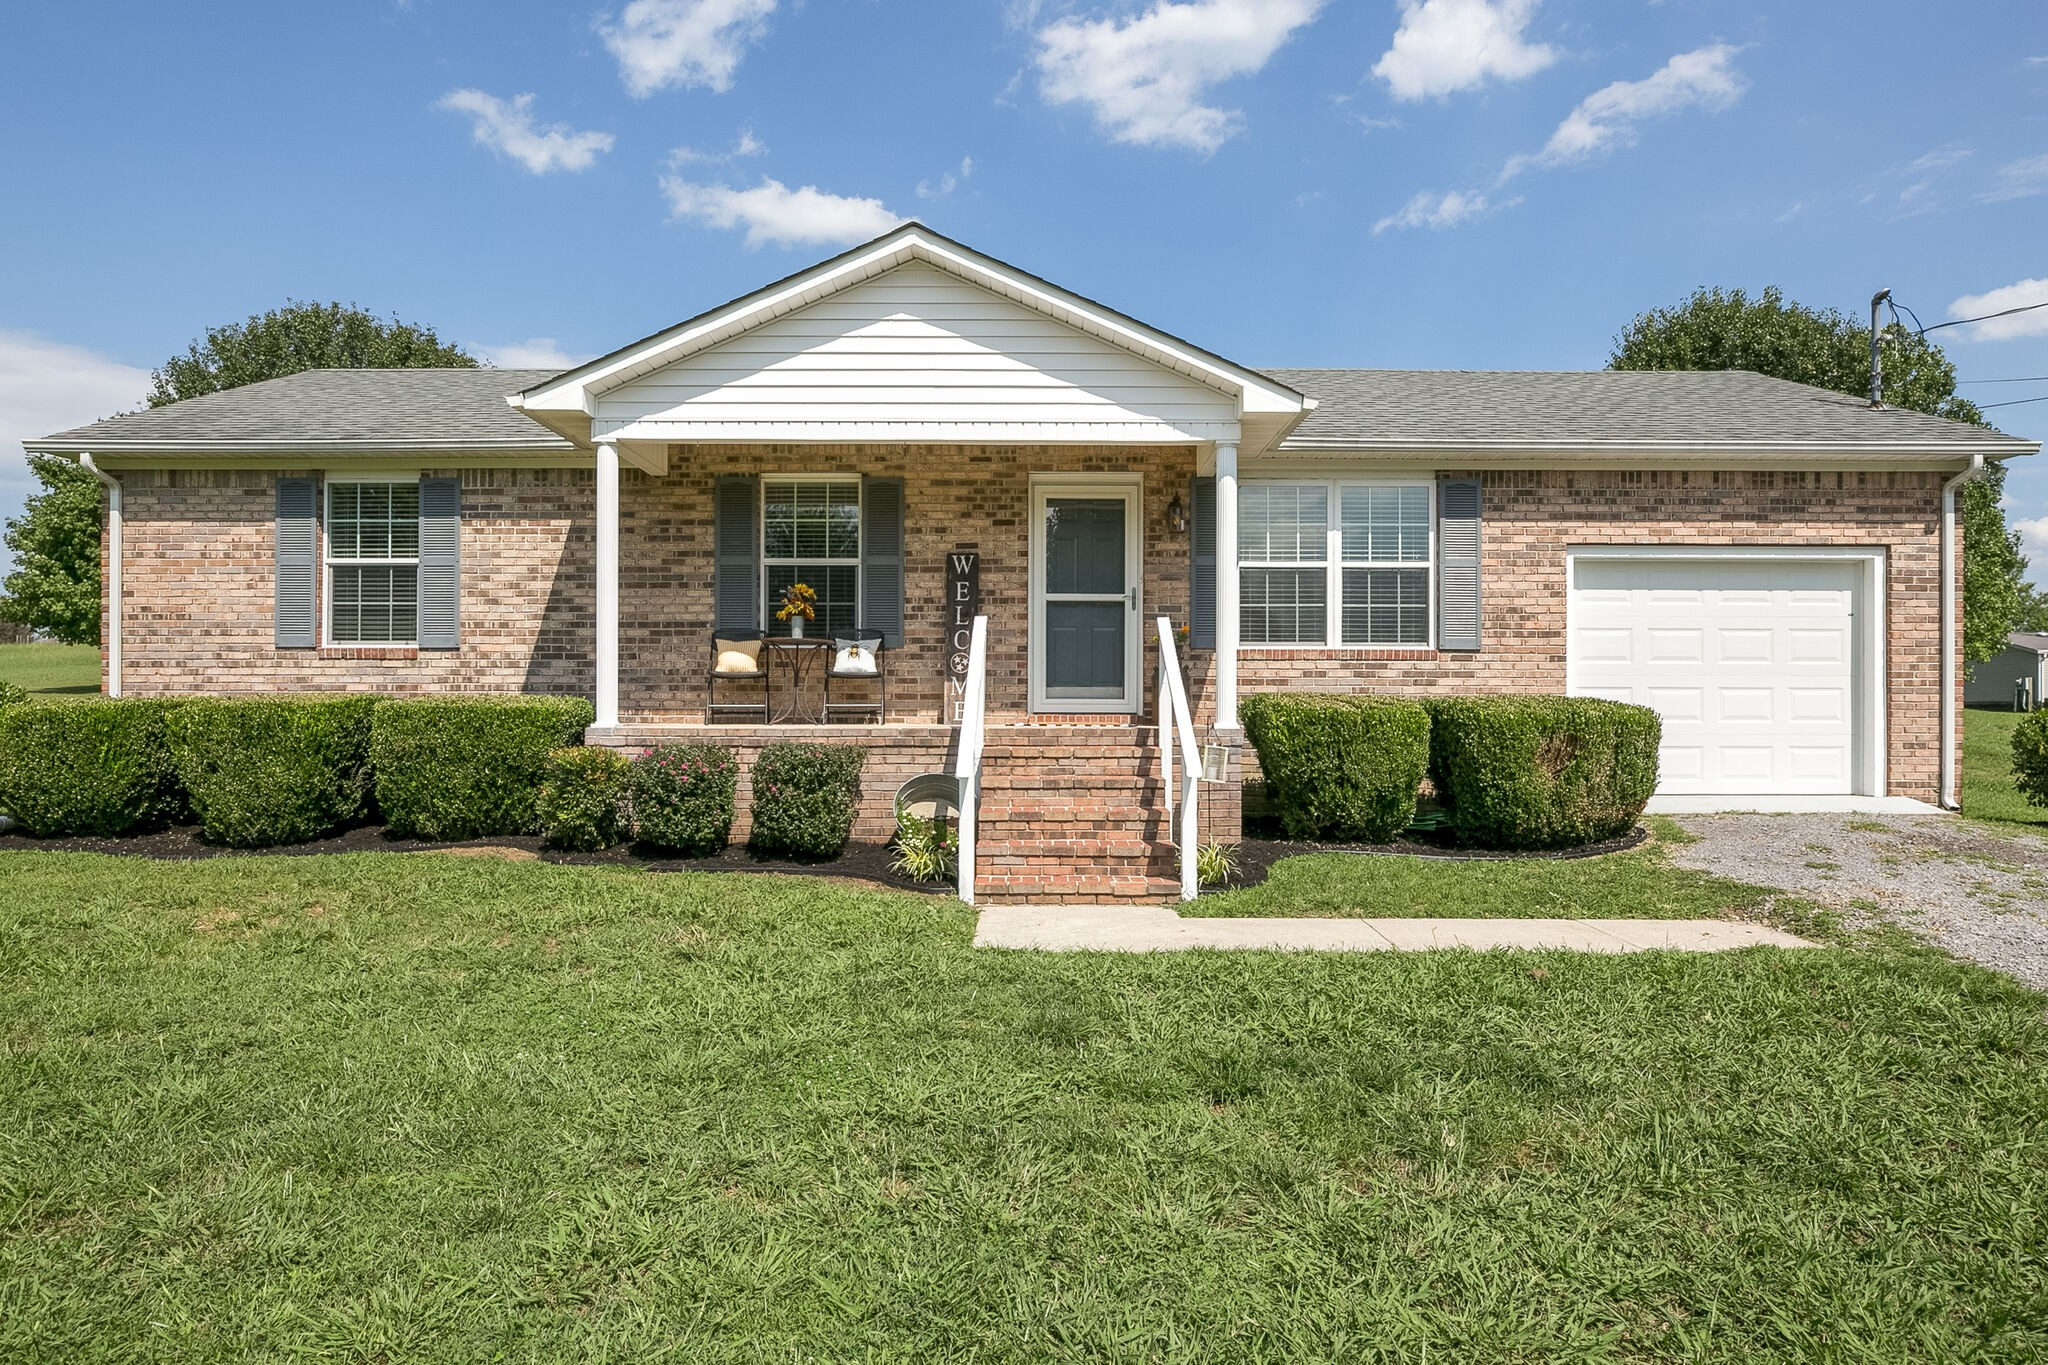 247 Kellee Dr Property Photo - Dowelltown, TN real estate listing